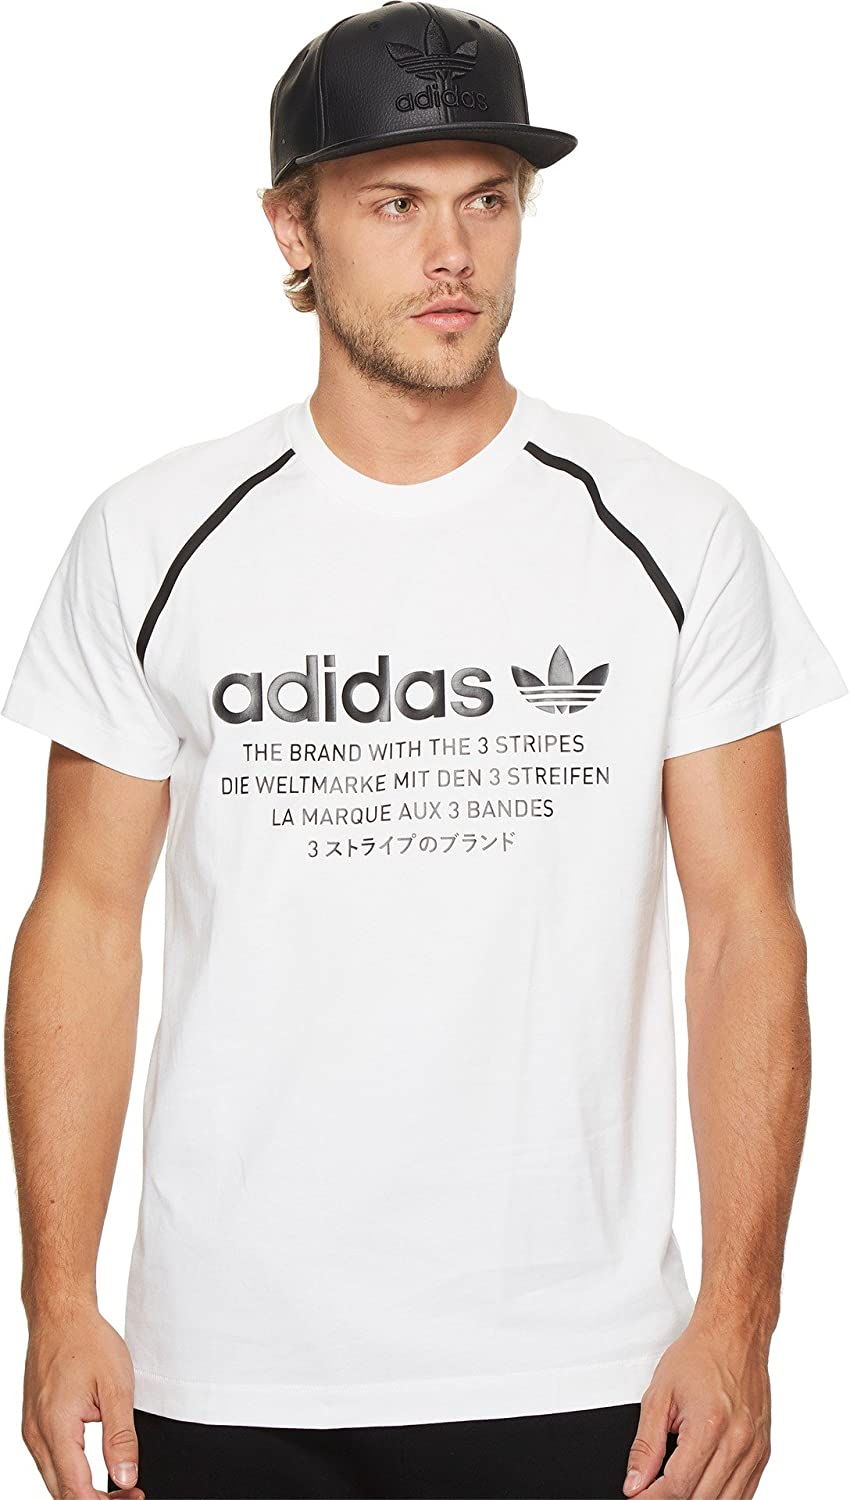 adidas Men's Originals Nmd Tee